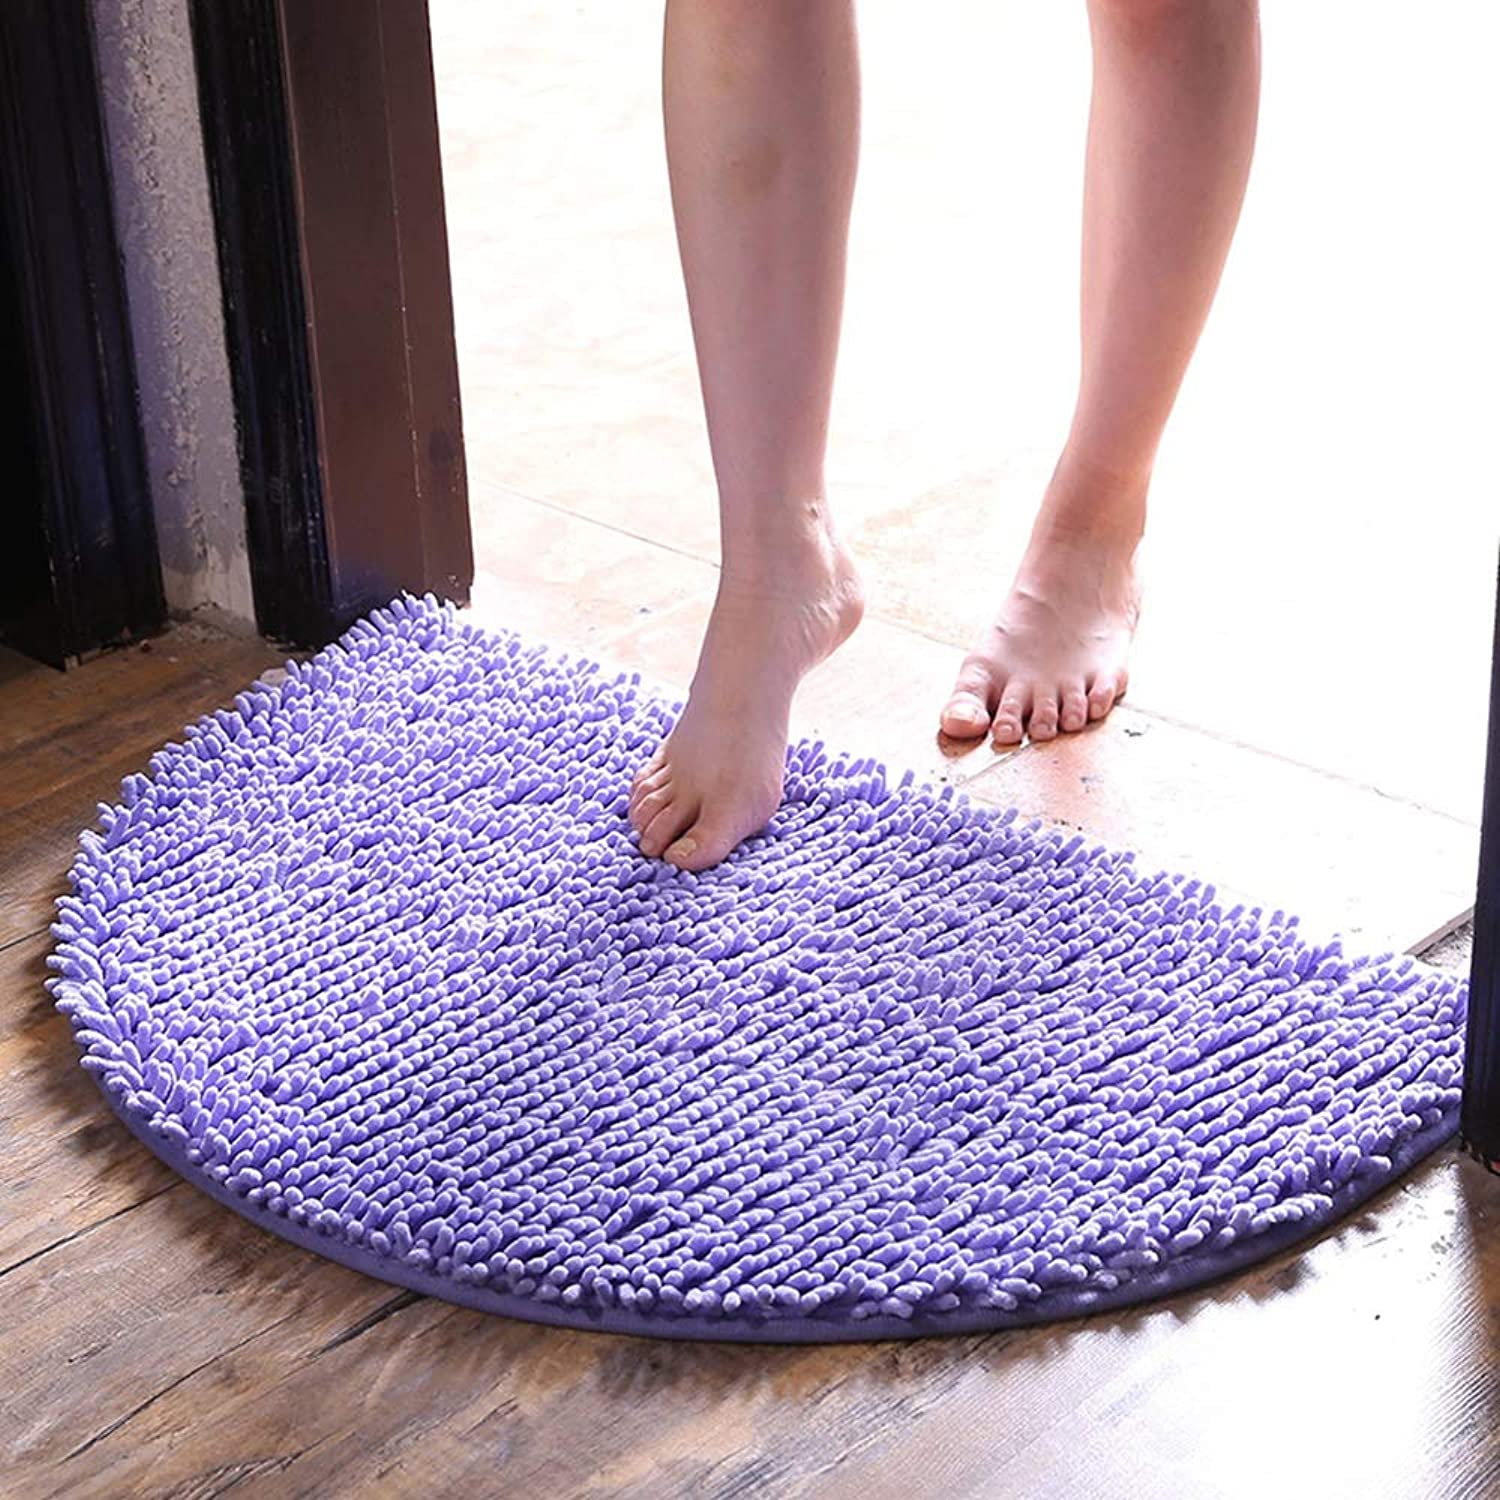 SHATONG-Carpet Entry Door Absorbent Foot Door mat Bathroom Bathroom Bathroom Door Non-Slip Foot mat (color   Purple, Size   40X60cm)